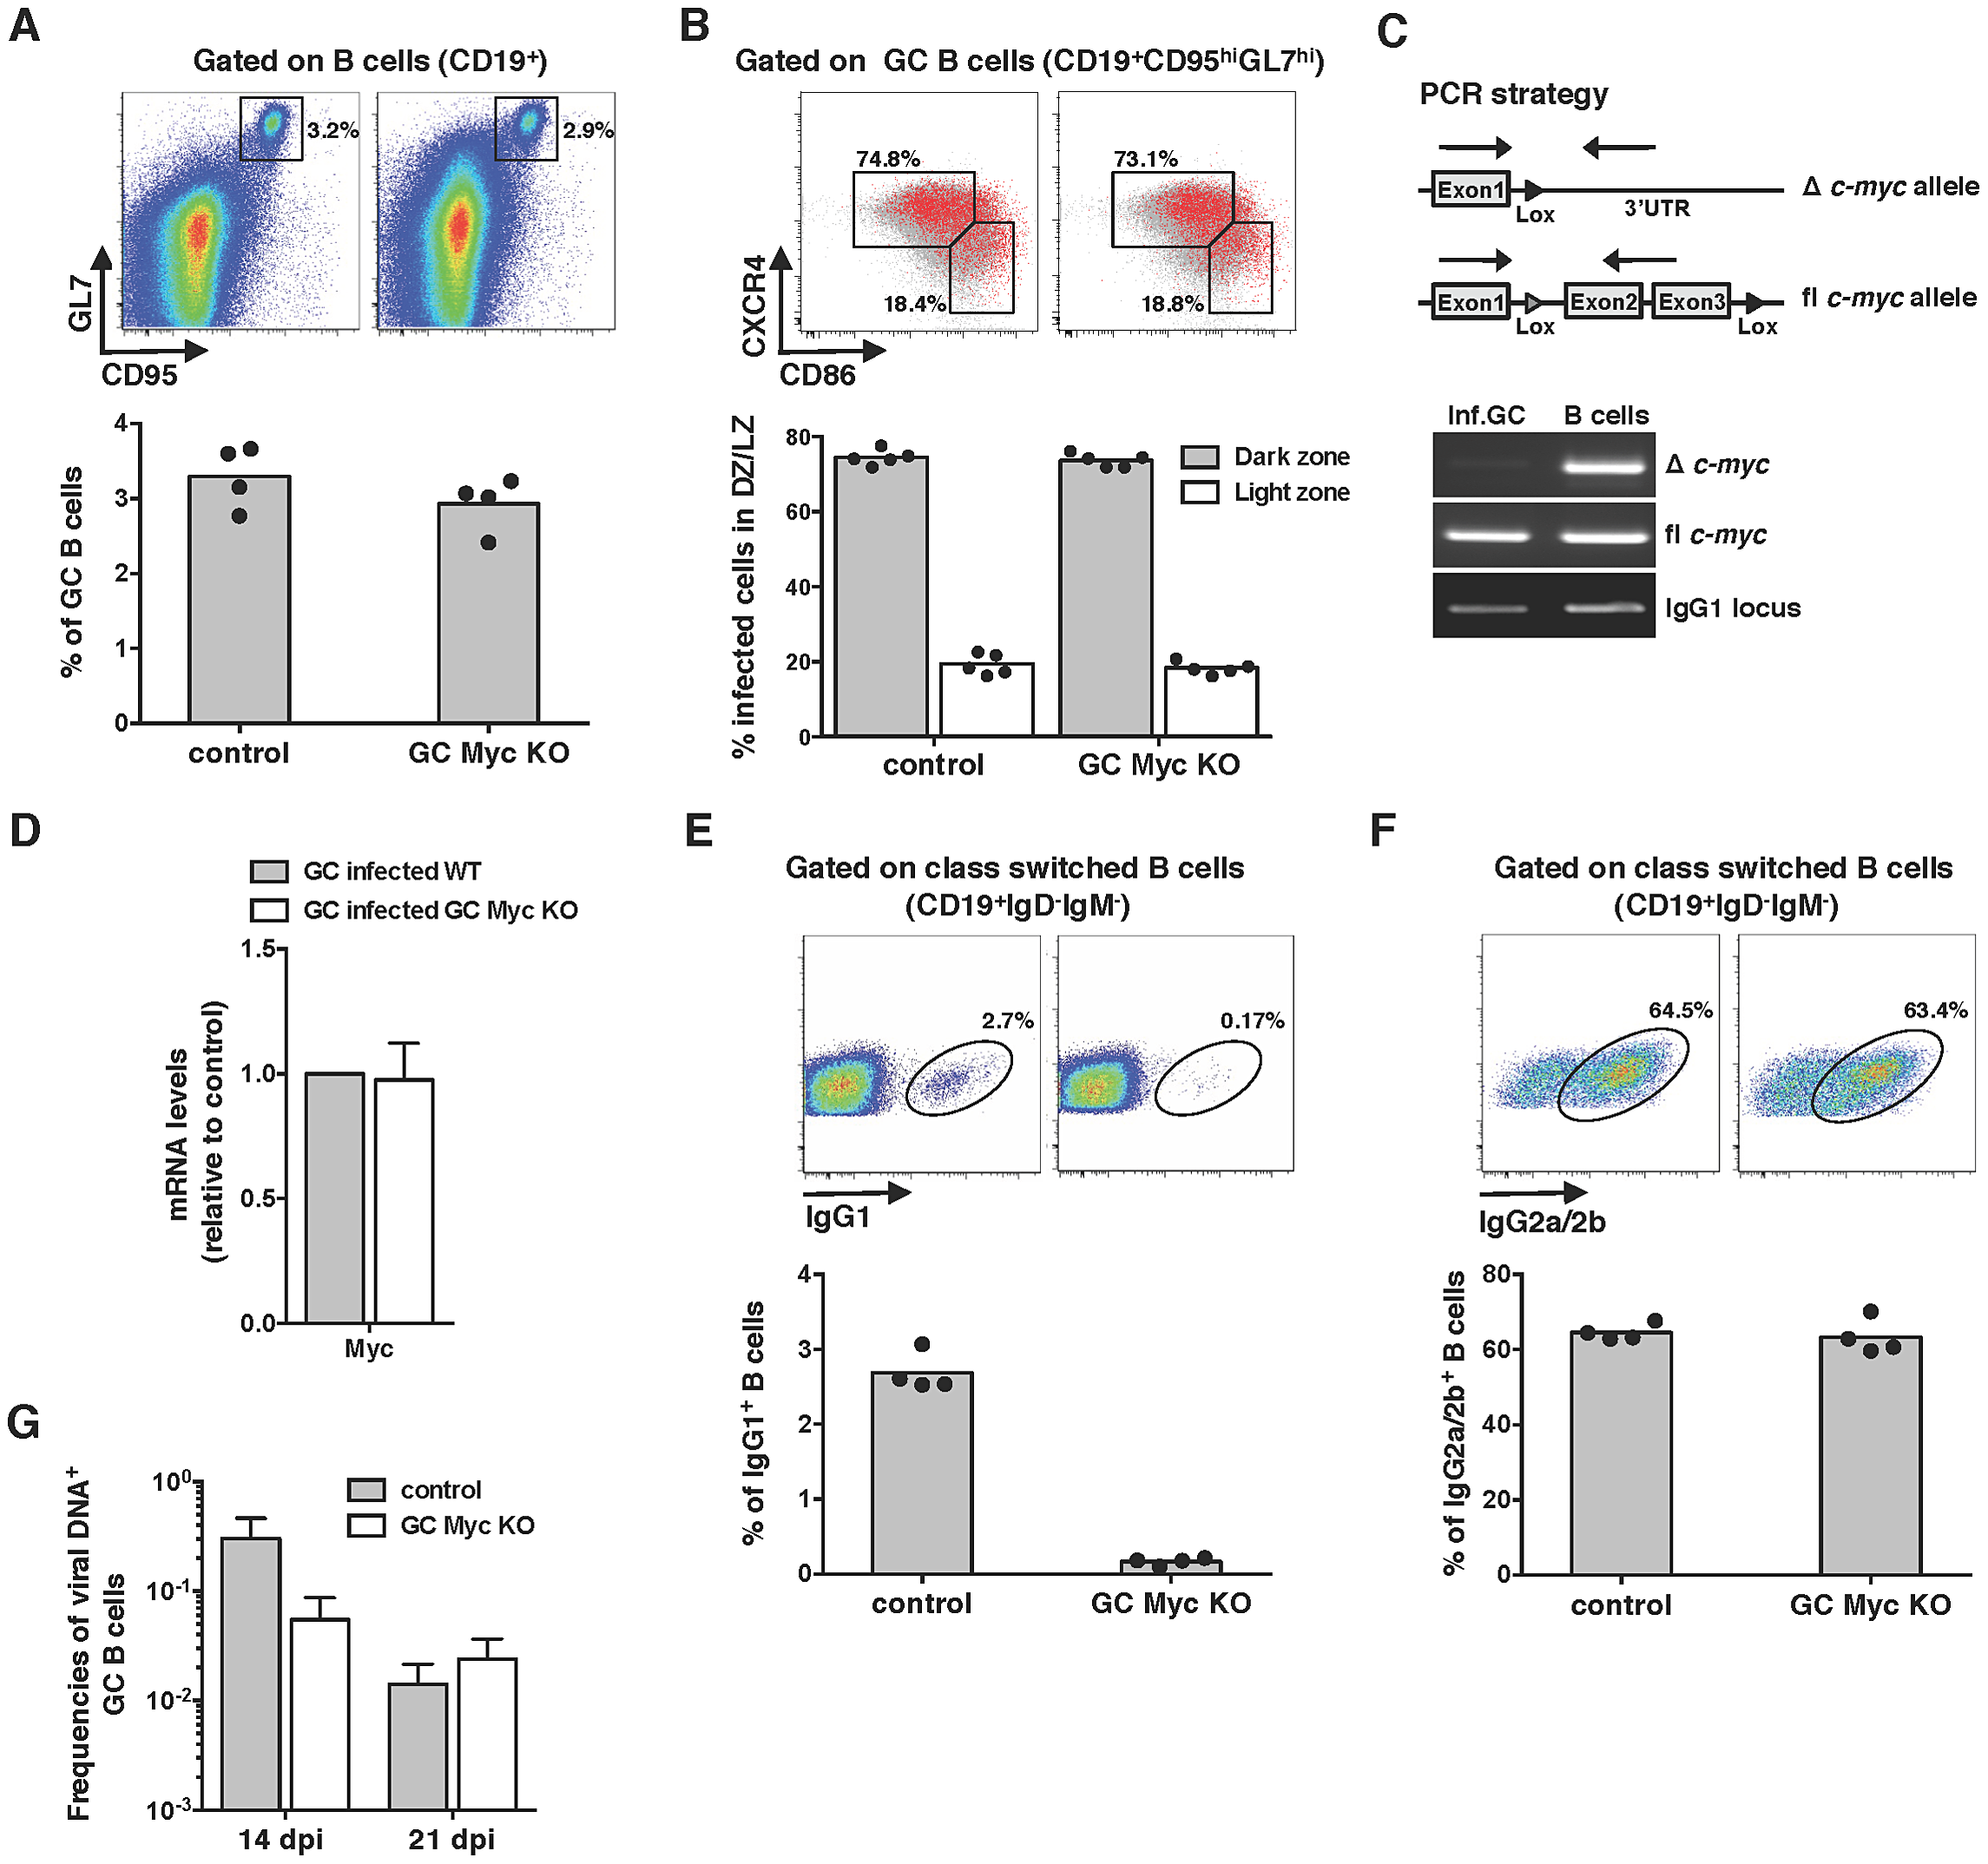 Myc is essential for the amplification of MuHV-4 infection in GC B-cells.